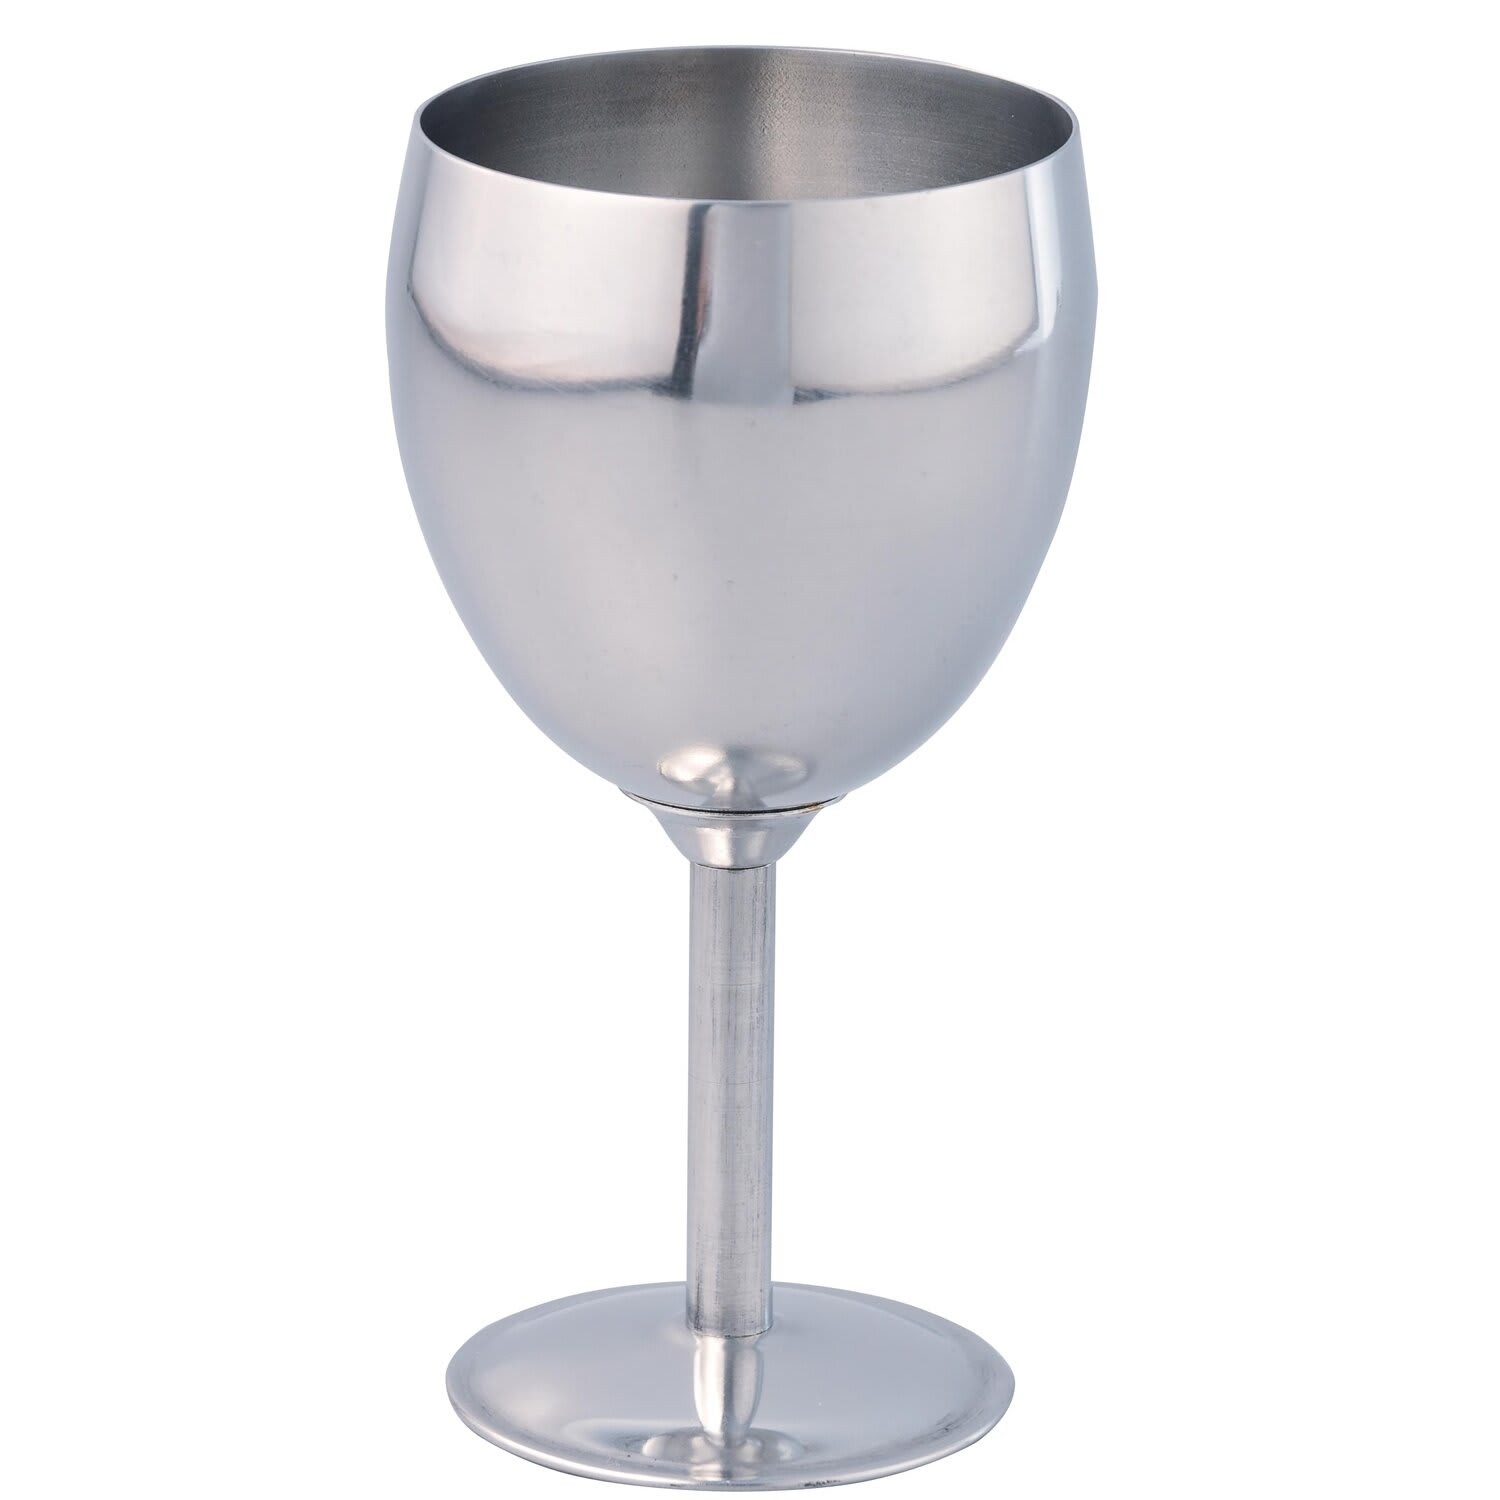 THERMO STEEL 250ML STAINLESS STEEL WINE GOBLET